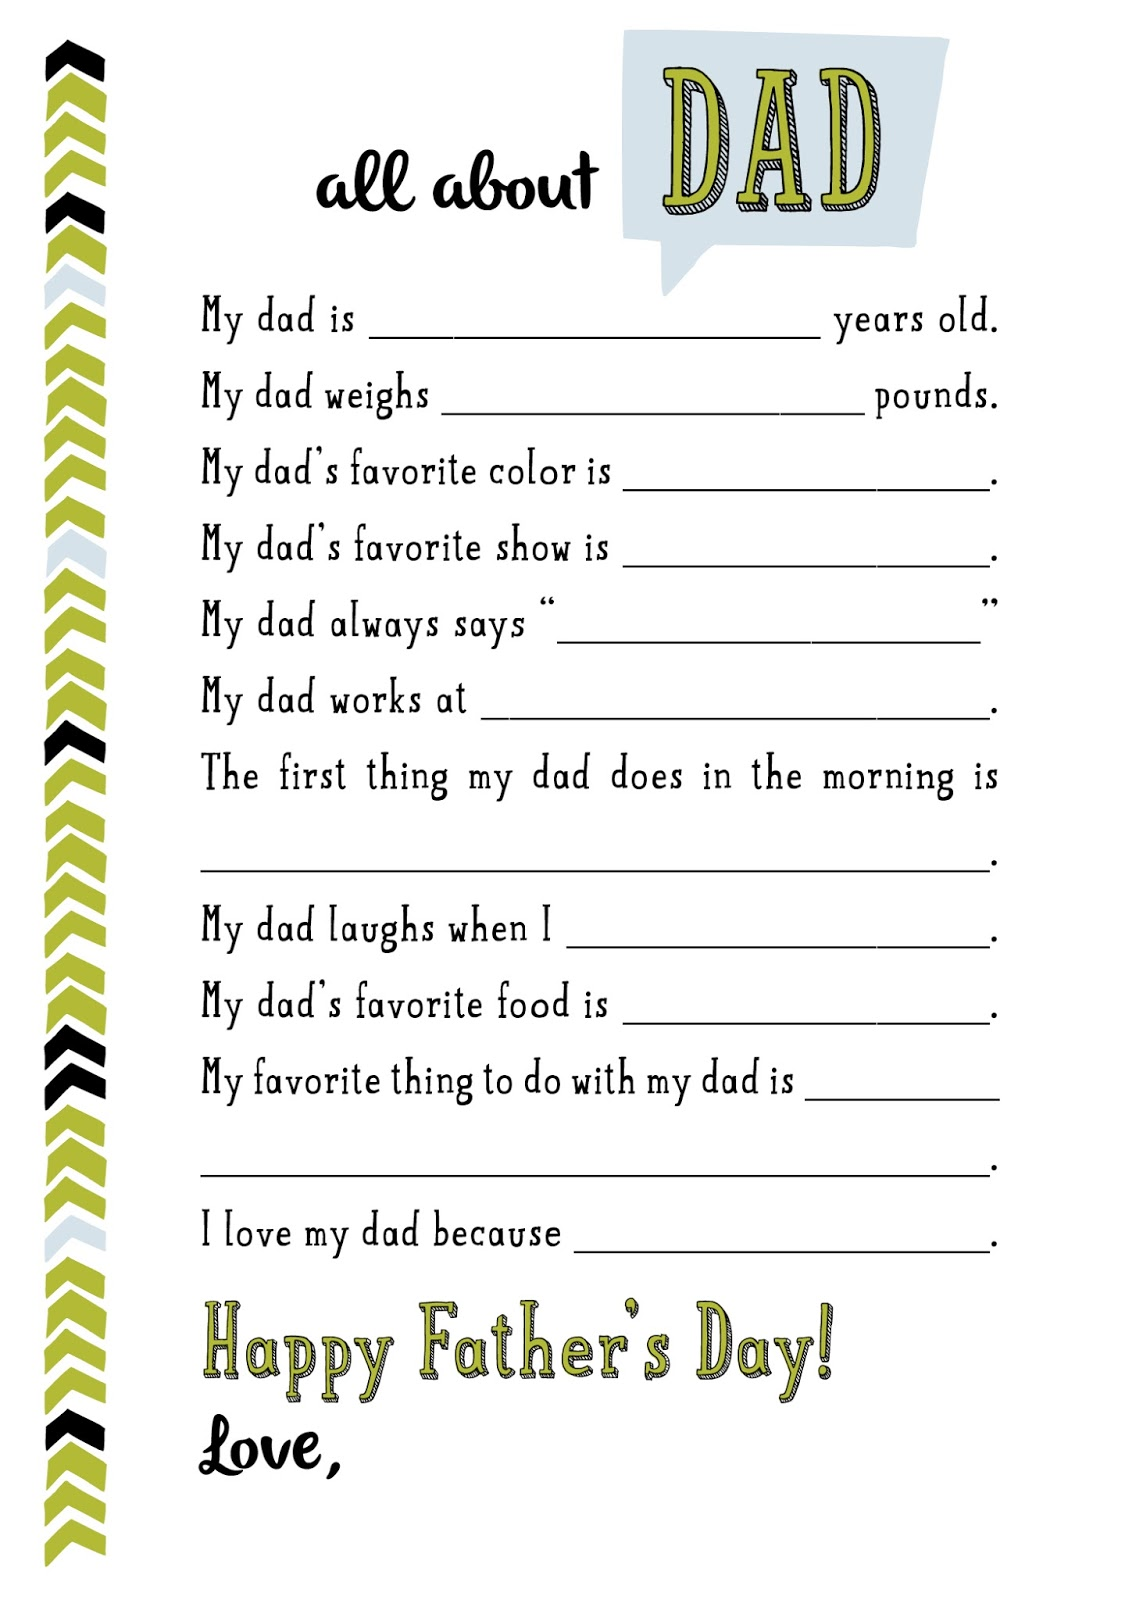 Unforgettable image regarding all about dad printable